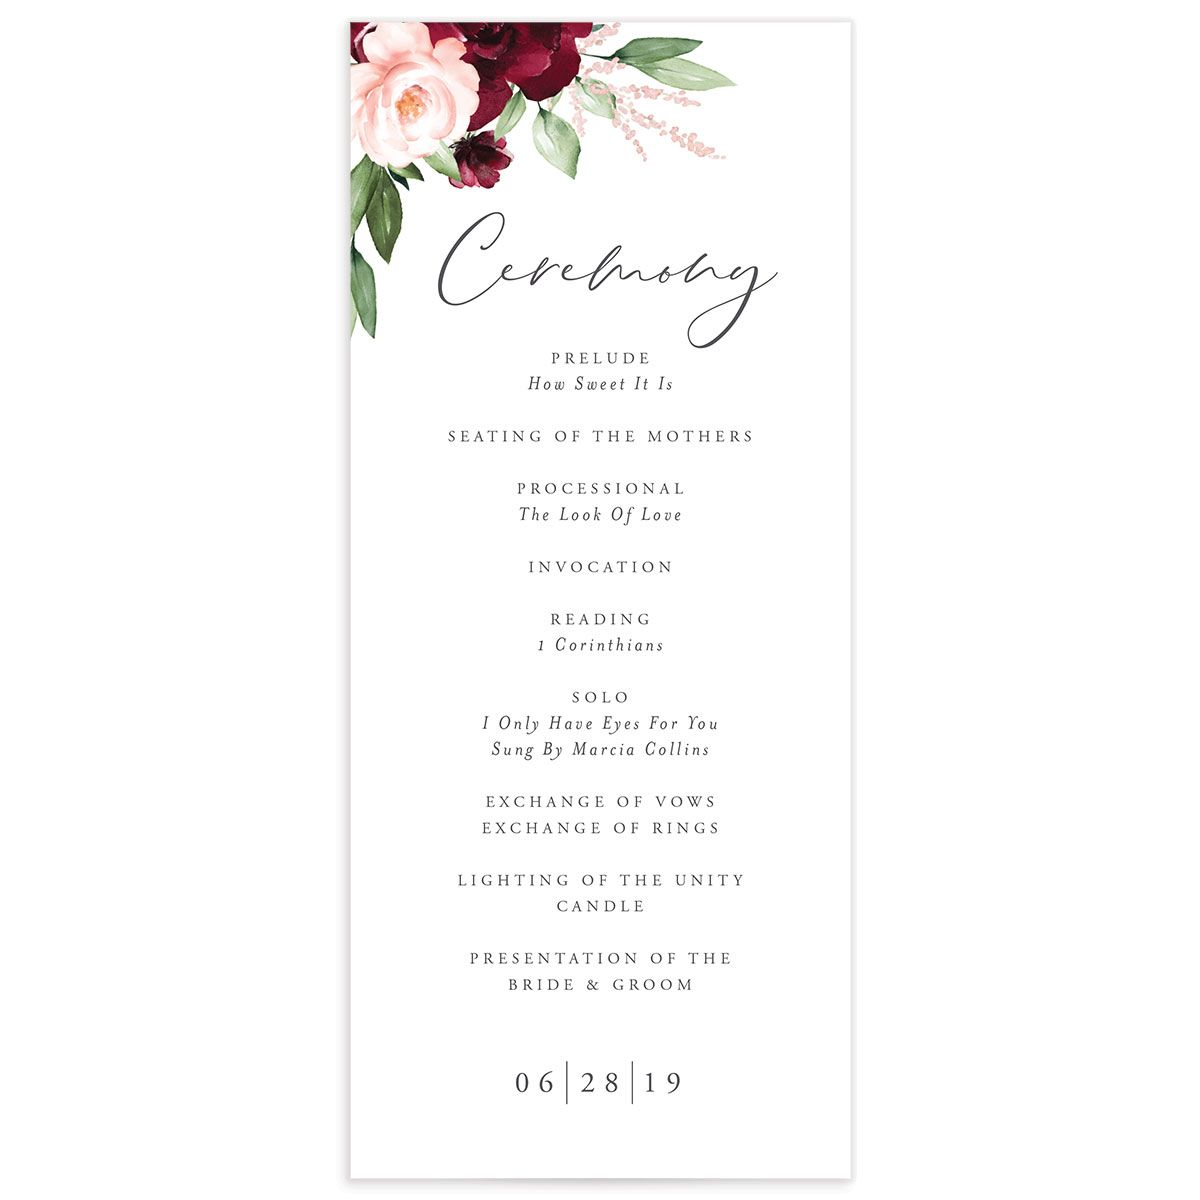 Beloved Floral Ceremony Programs in red